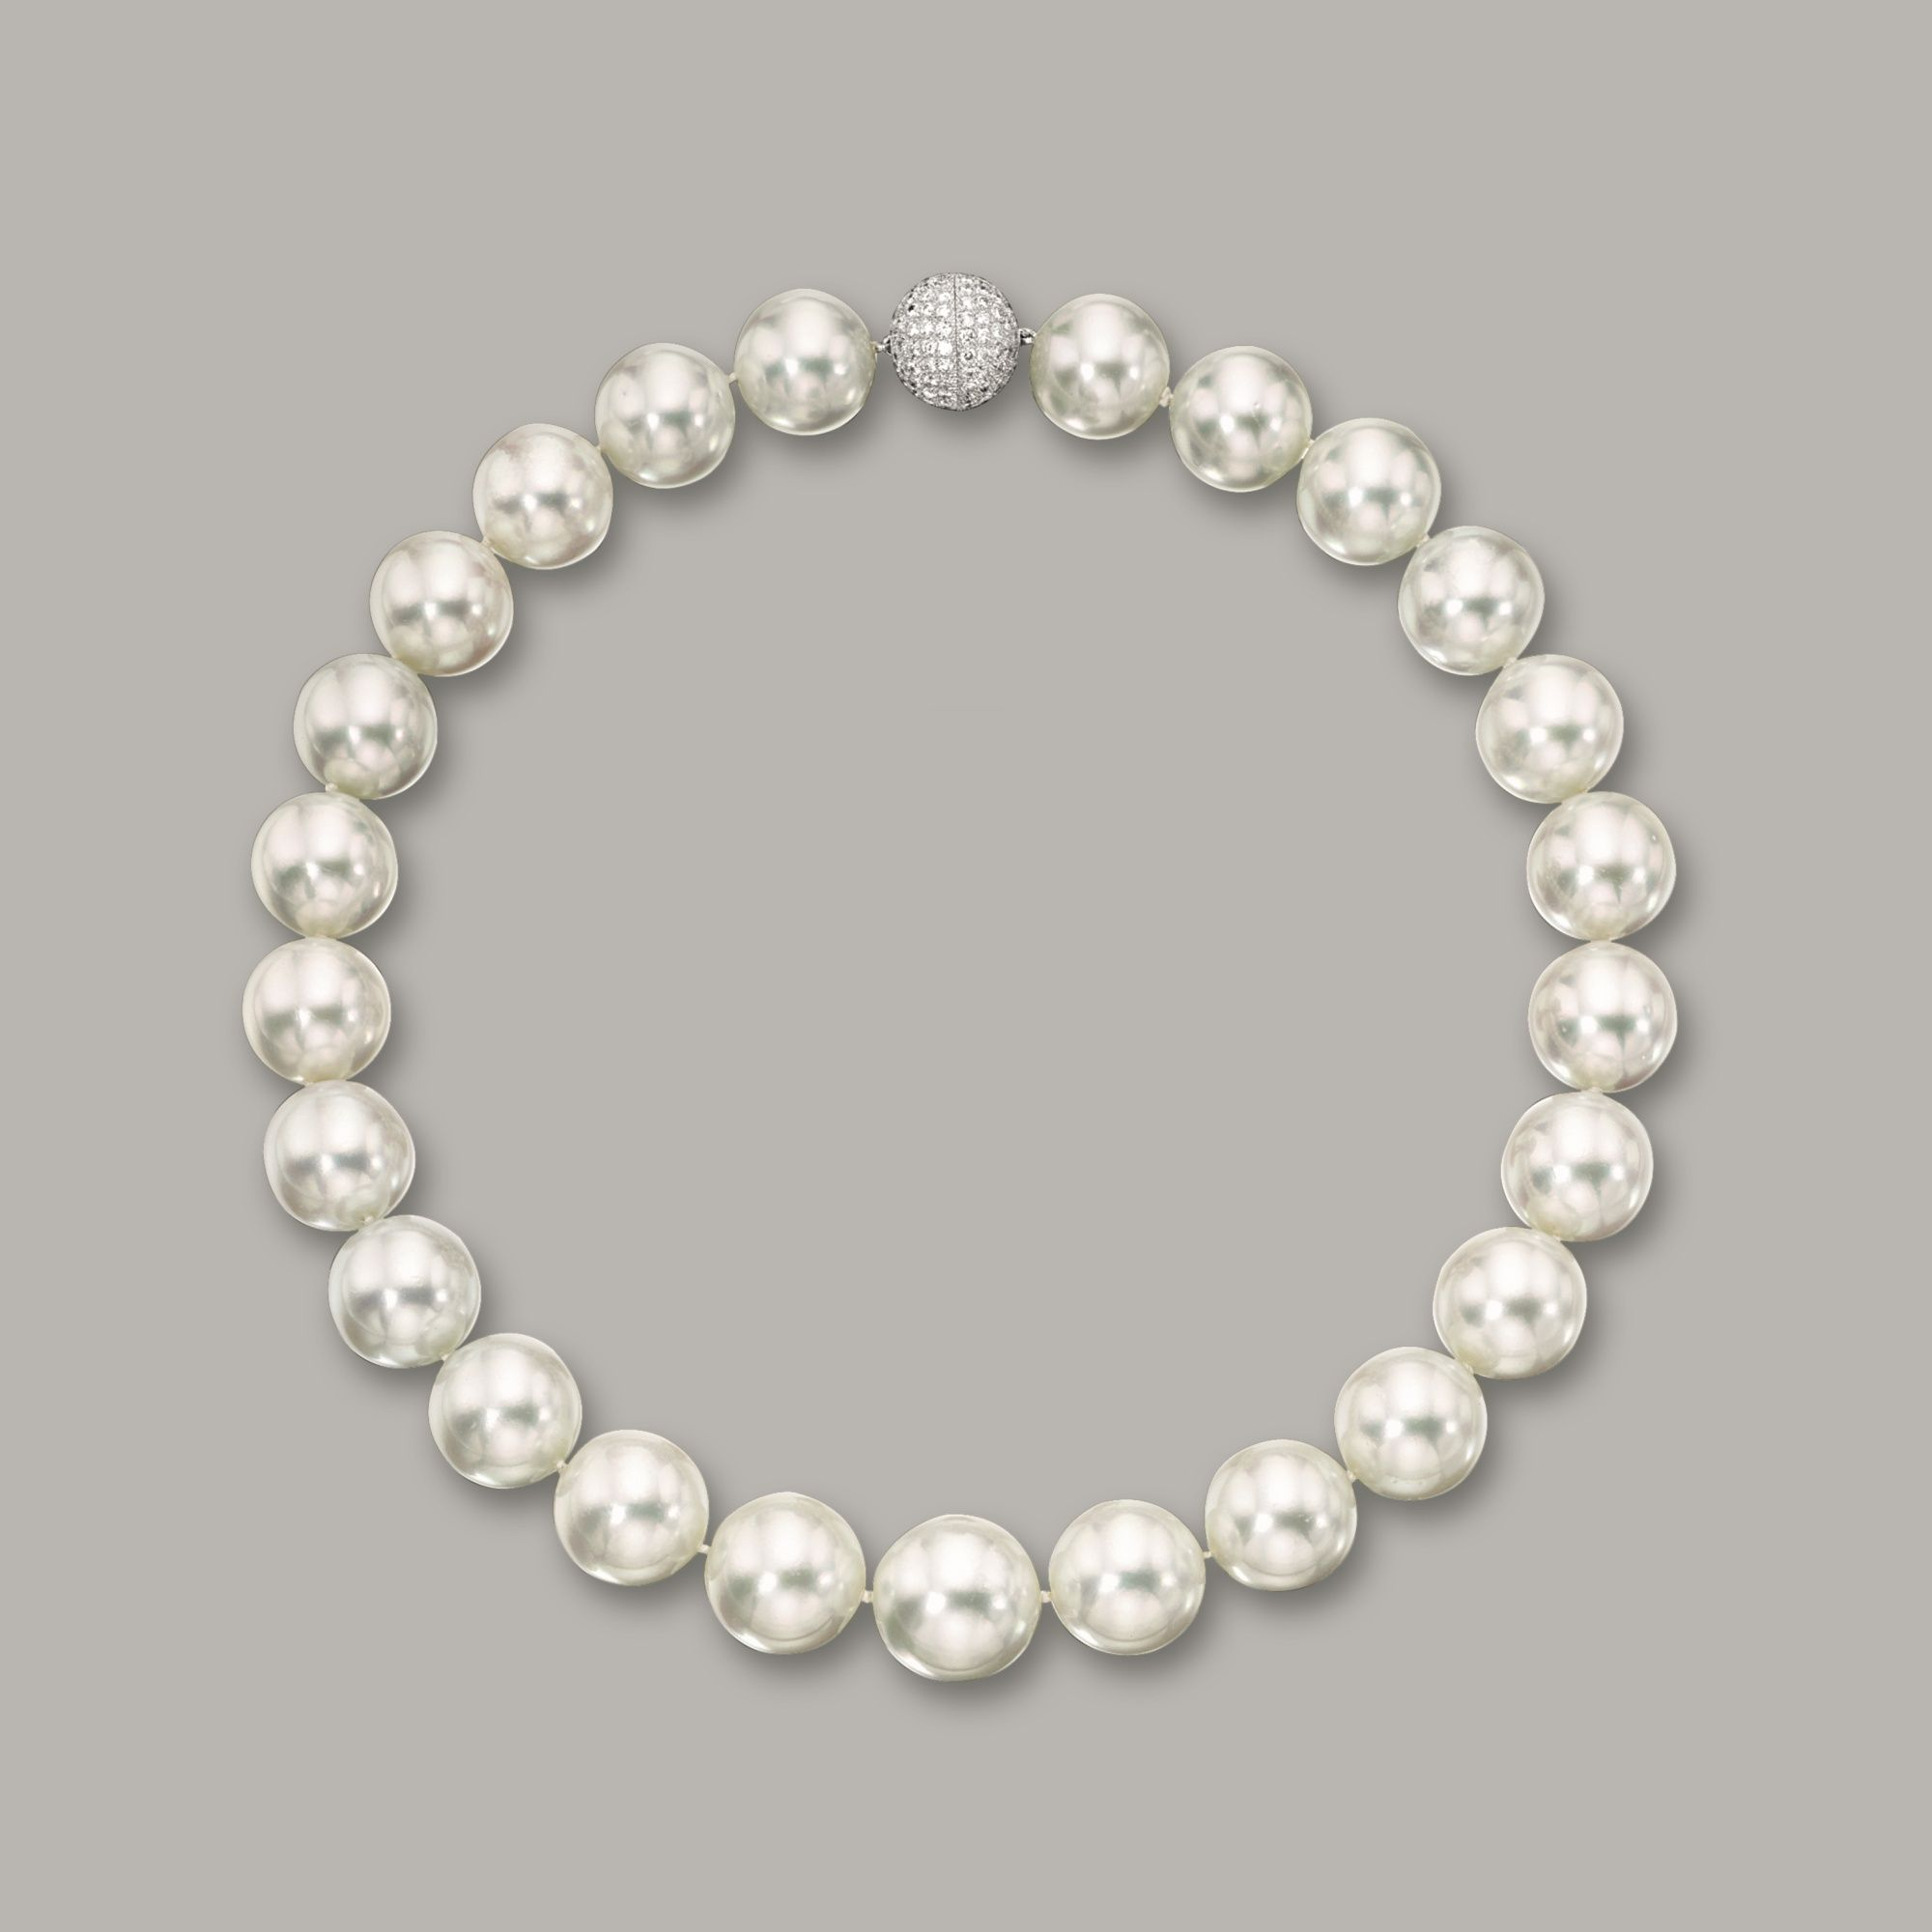 CULTURED PEARL AND DIAMOND NECKLACE- Composed of twenty-five cultured pearls measuring approximately 16.20 to 18.50mm, completed by a brilliant-cut diamond-set spherical clasp, the diamonds together weighing approximately 3.50 carats